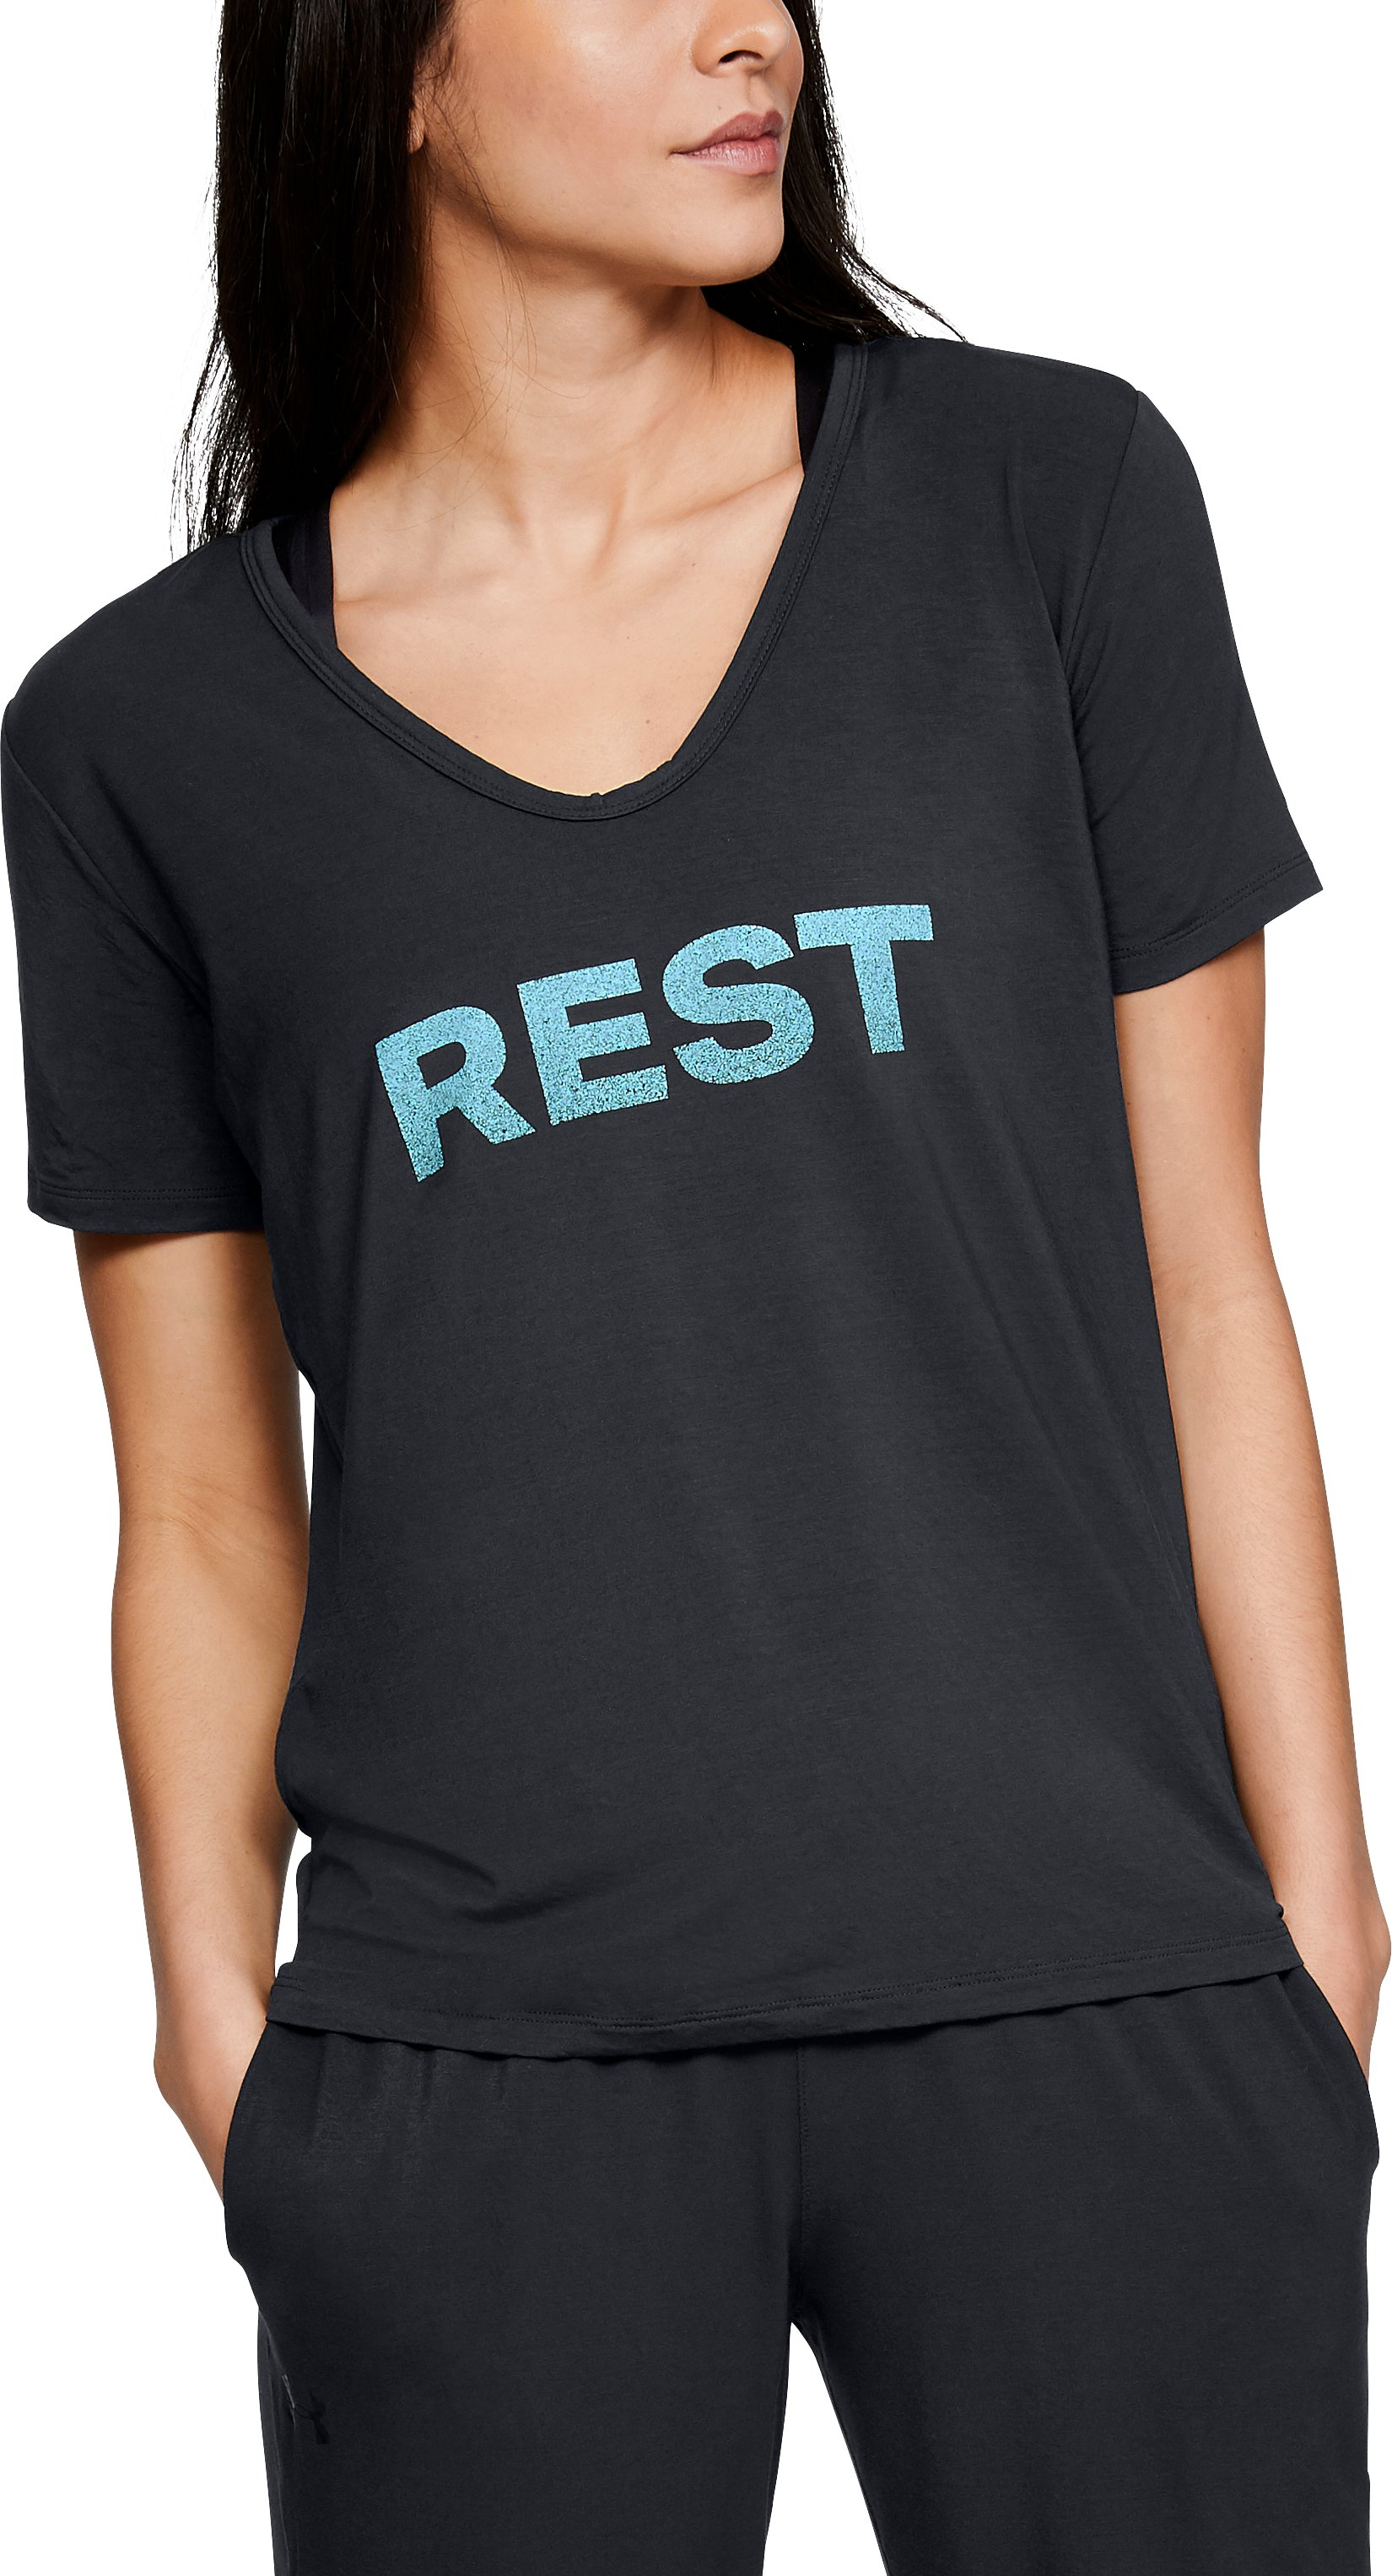 Women's Athlete Recovery Ultra Comfort Sleepwear REST Graphic T-Shirt, Black ,